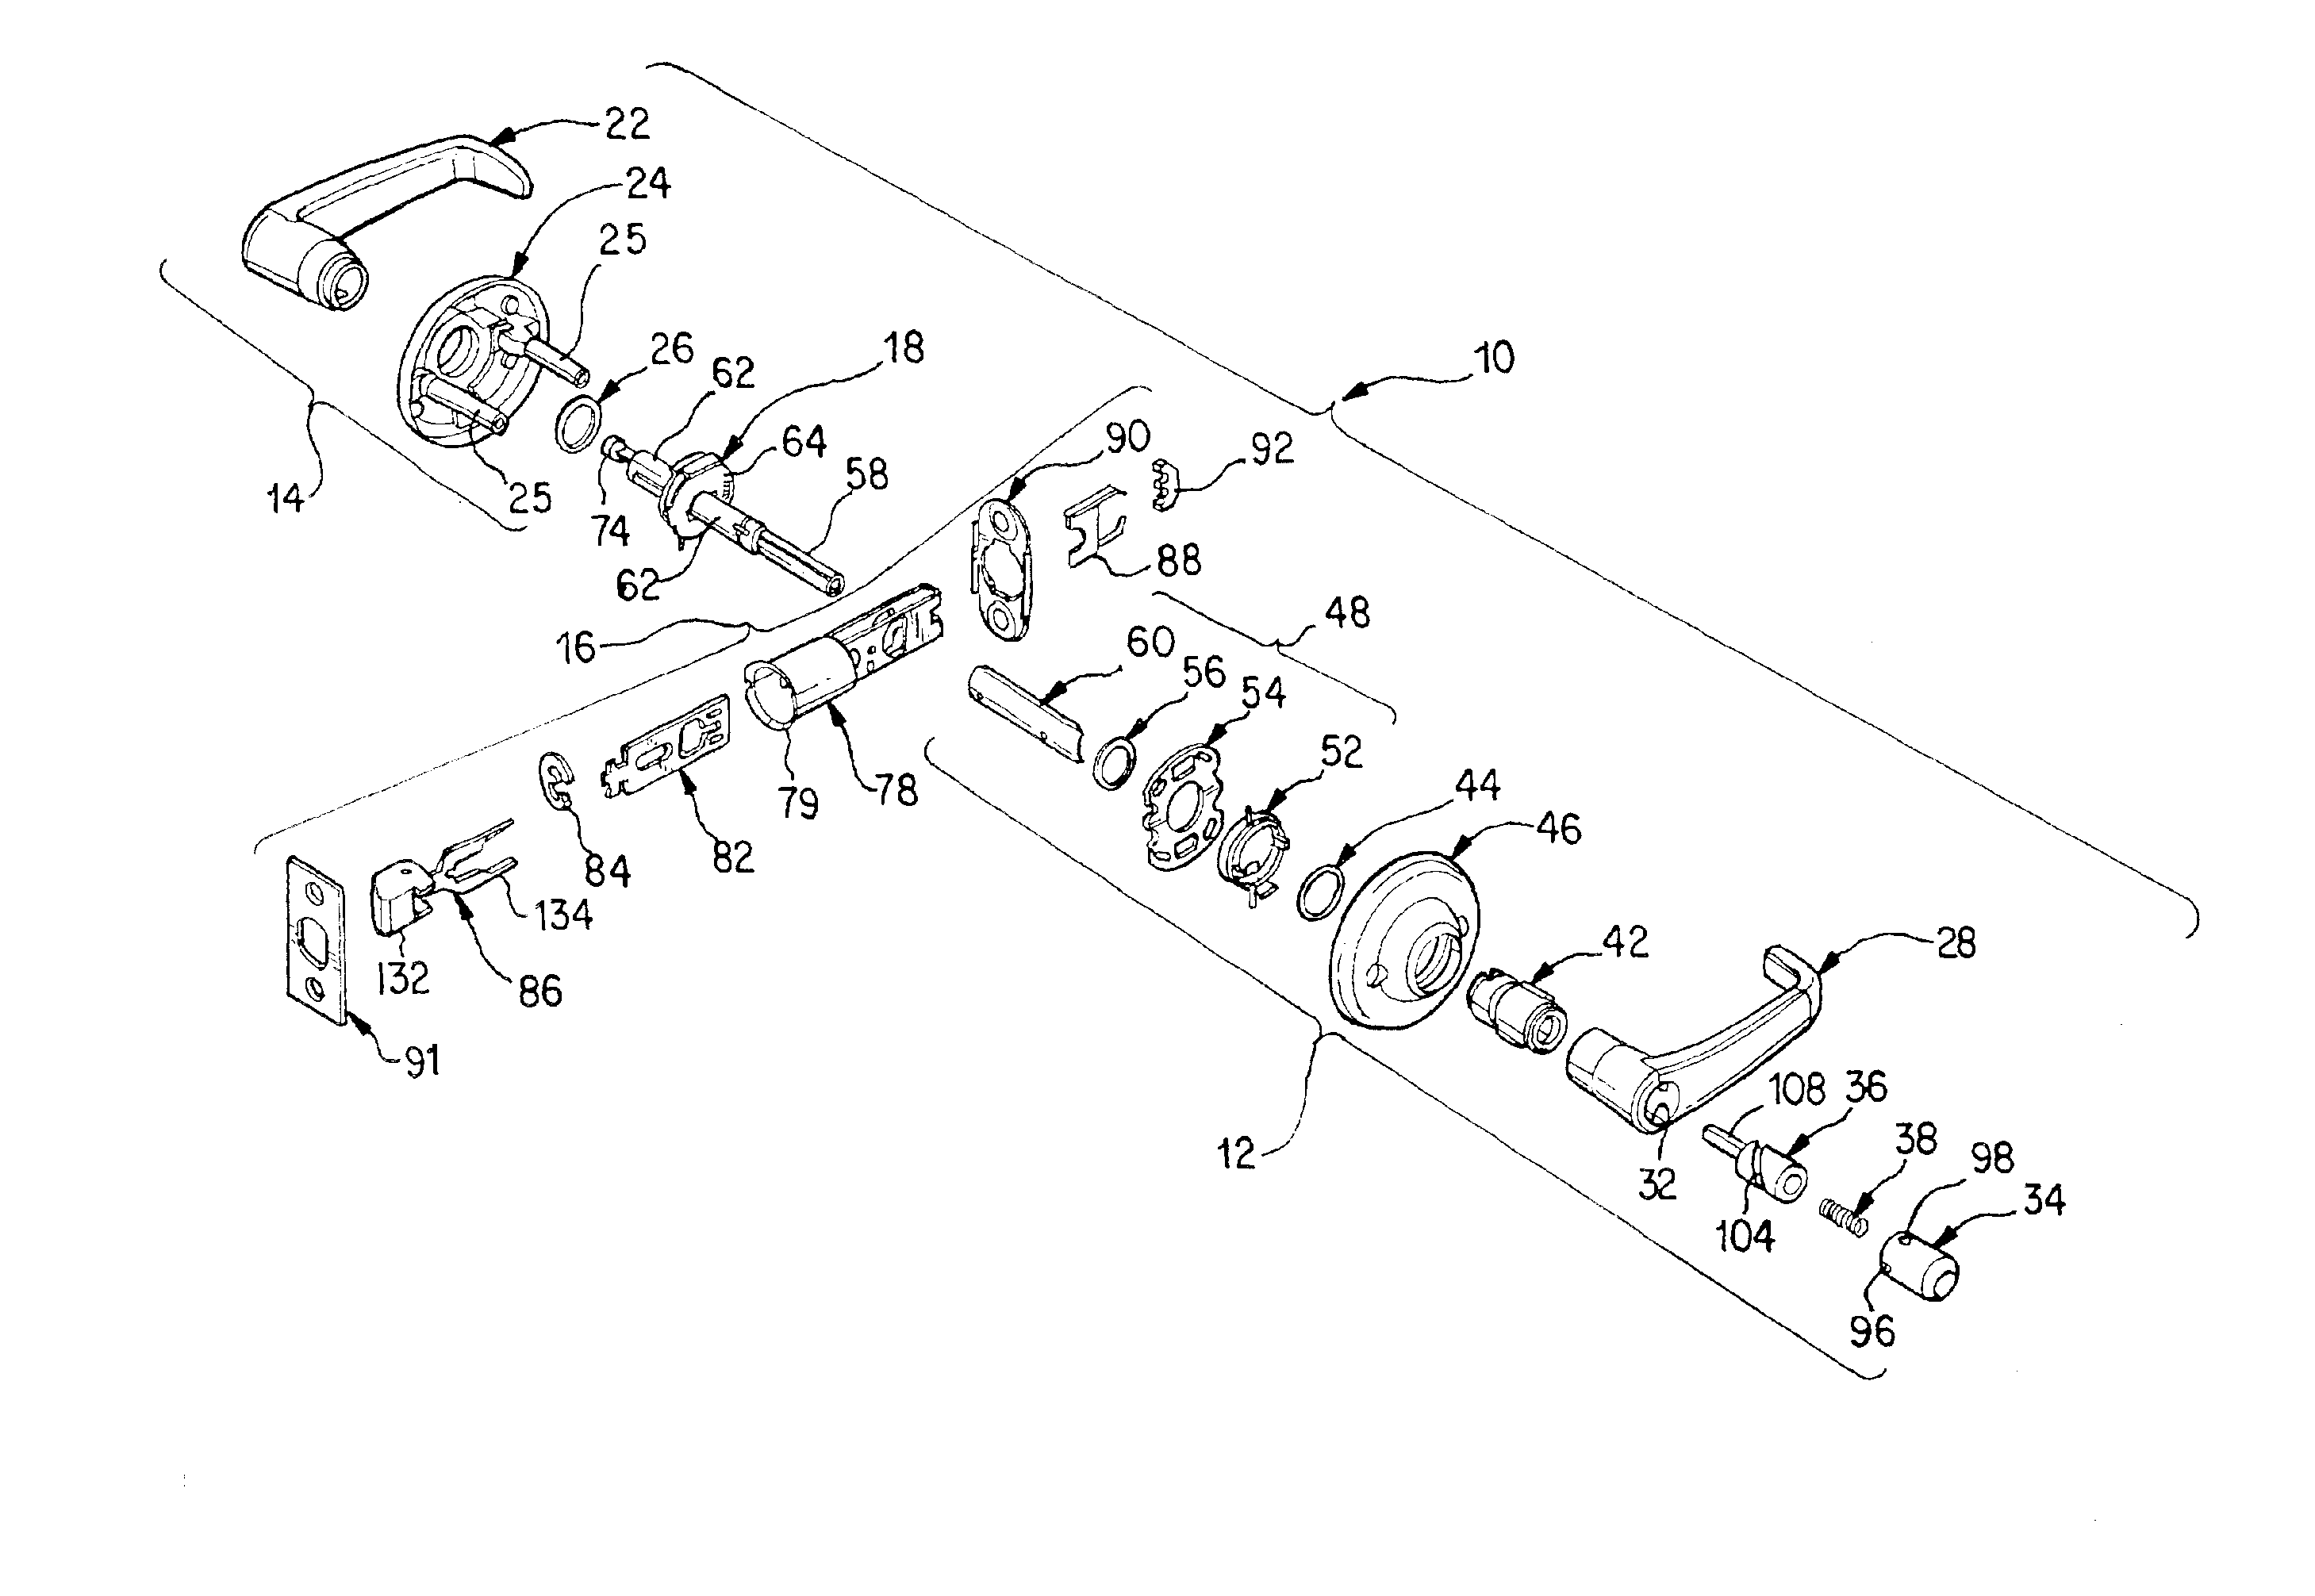 Patent Us6860529 - Push Button With Latch Kick-off